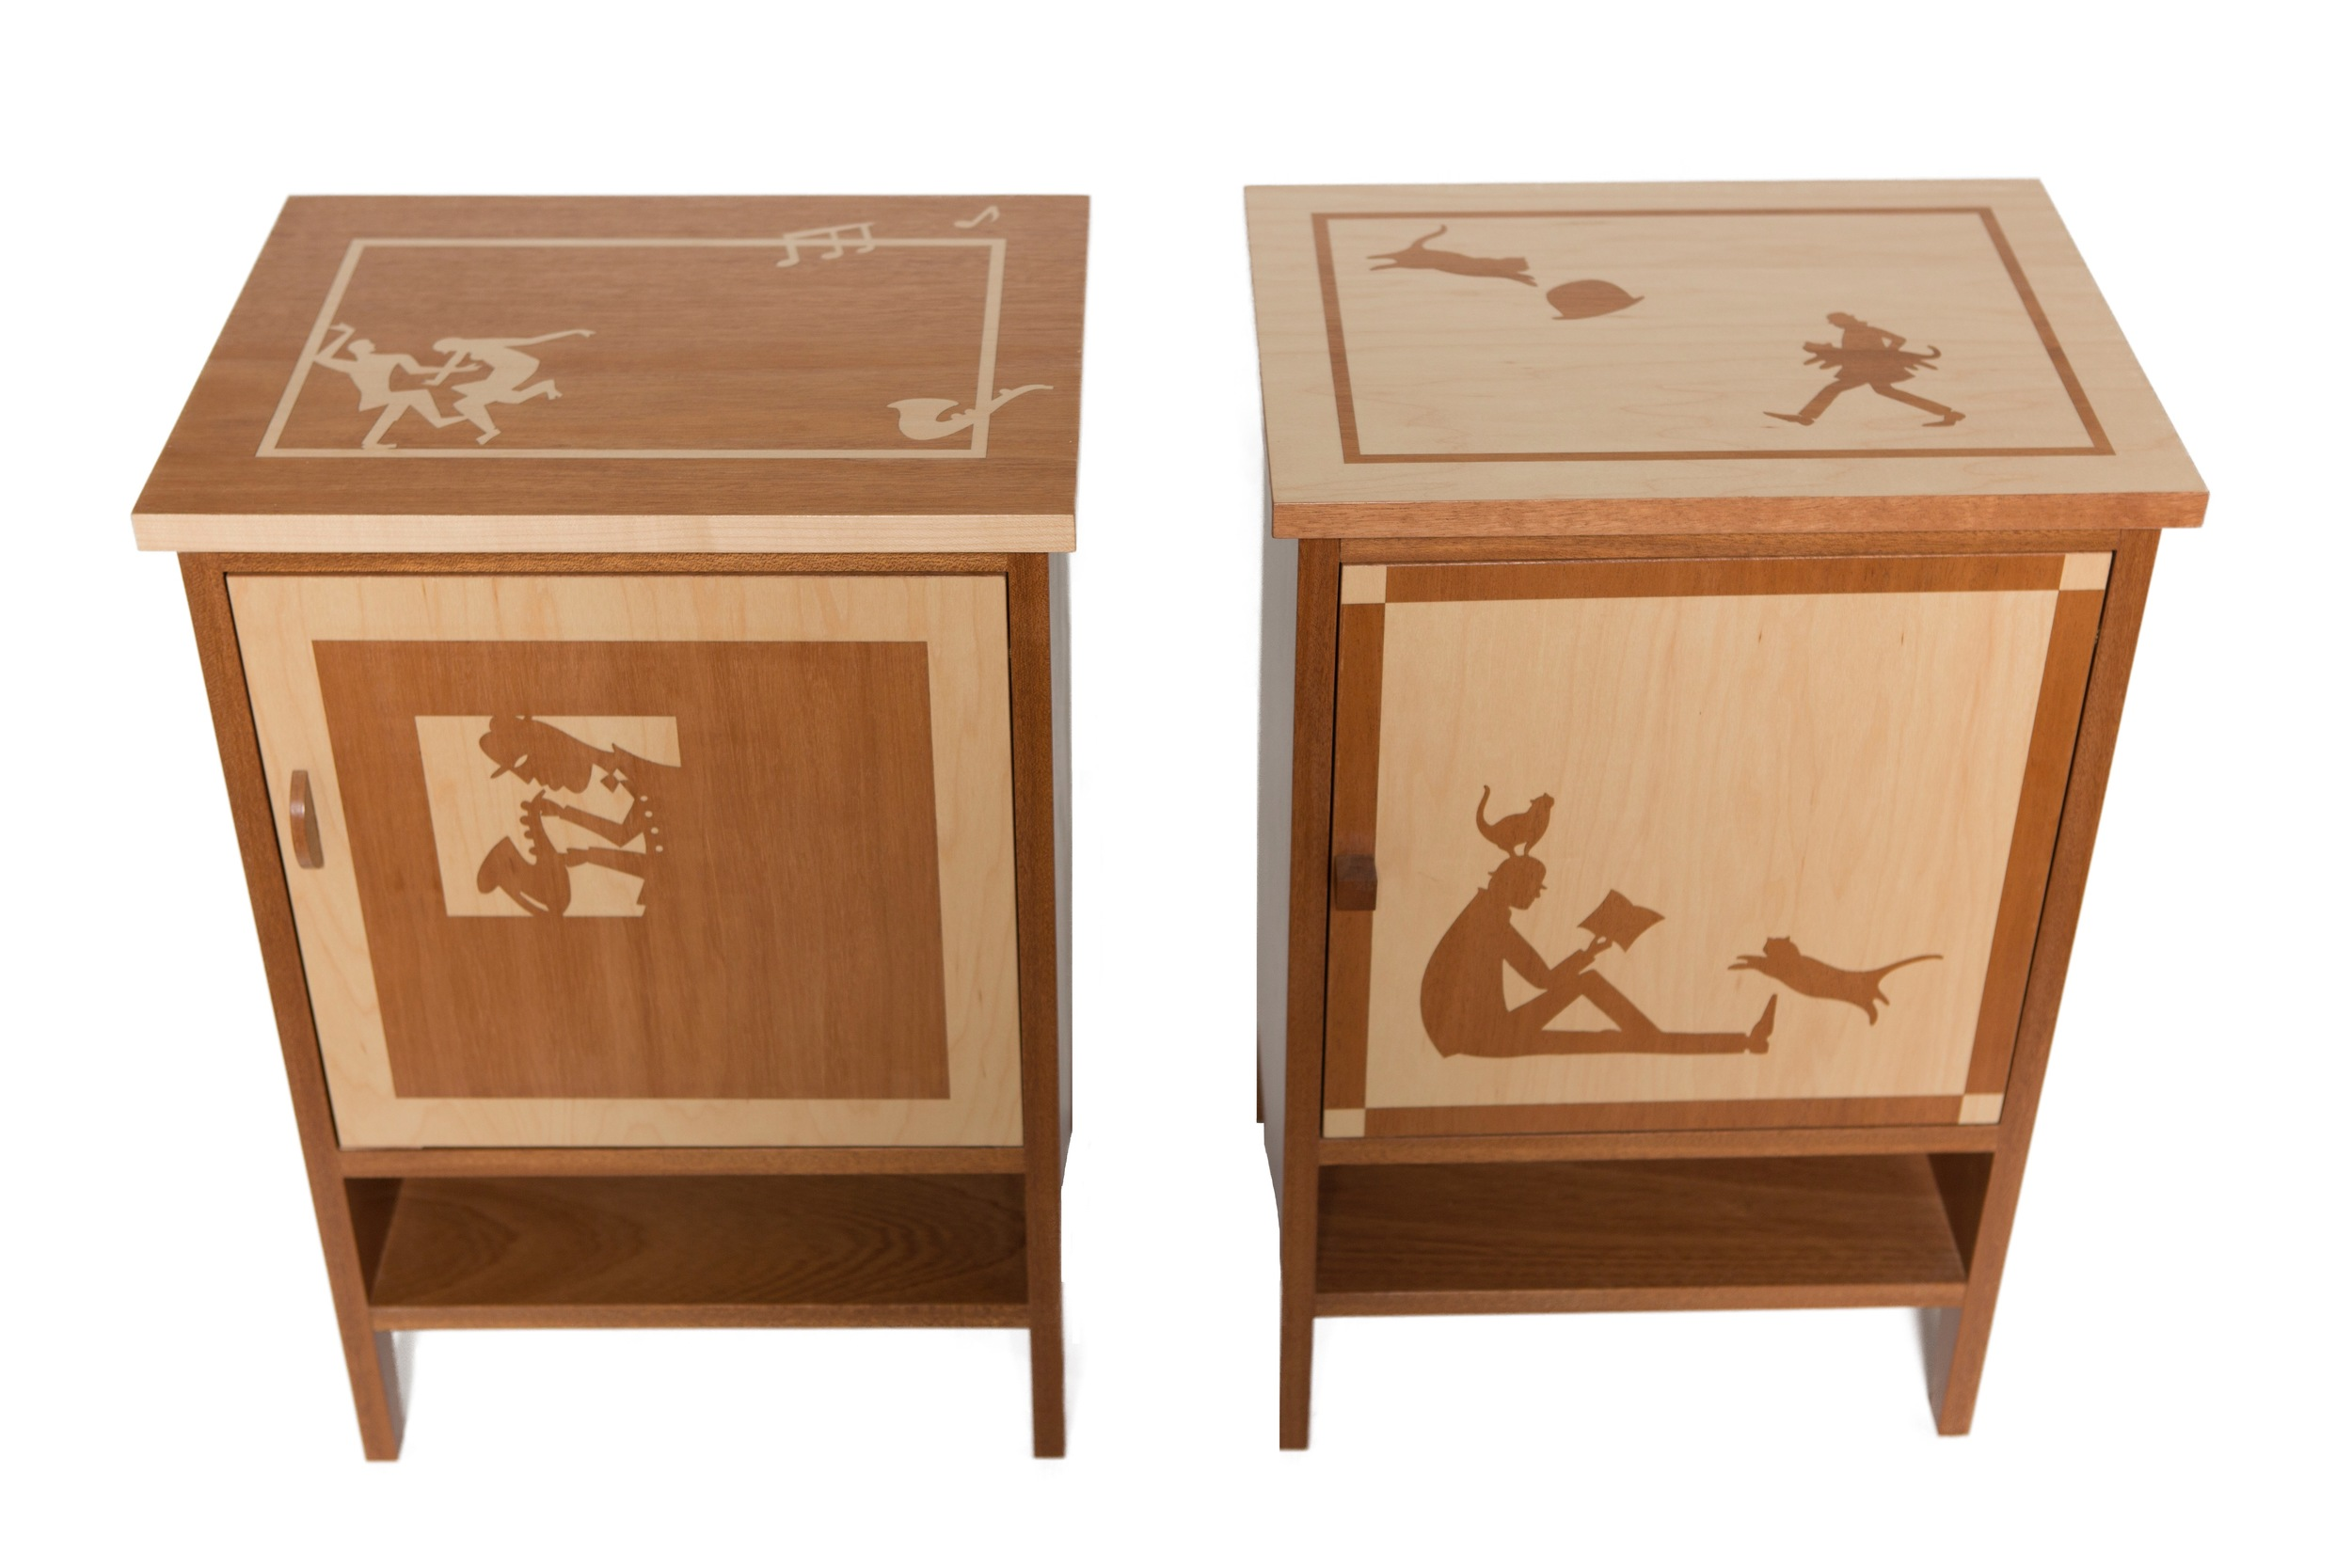 We aim to engage your imagination by creating furniture with visual stories.